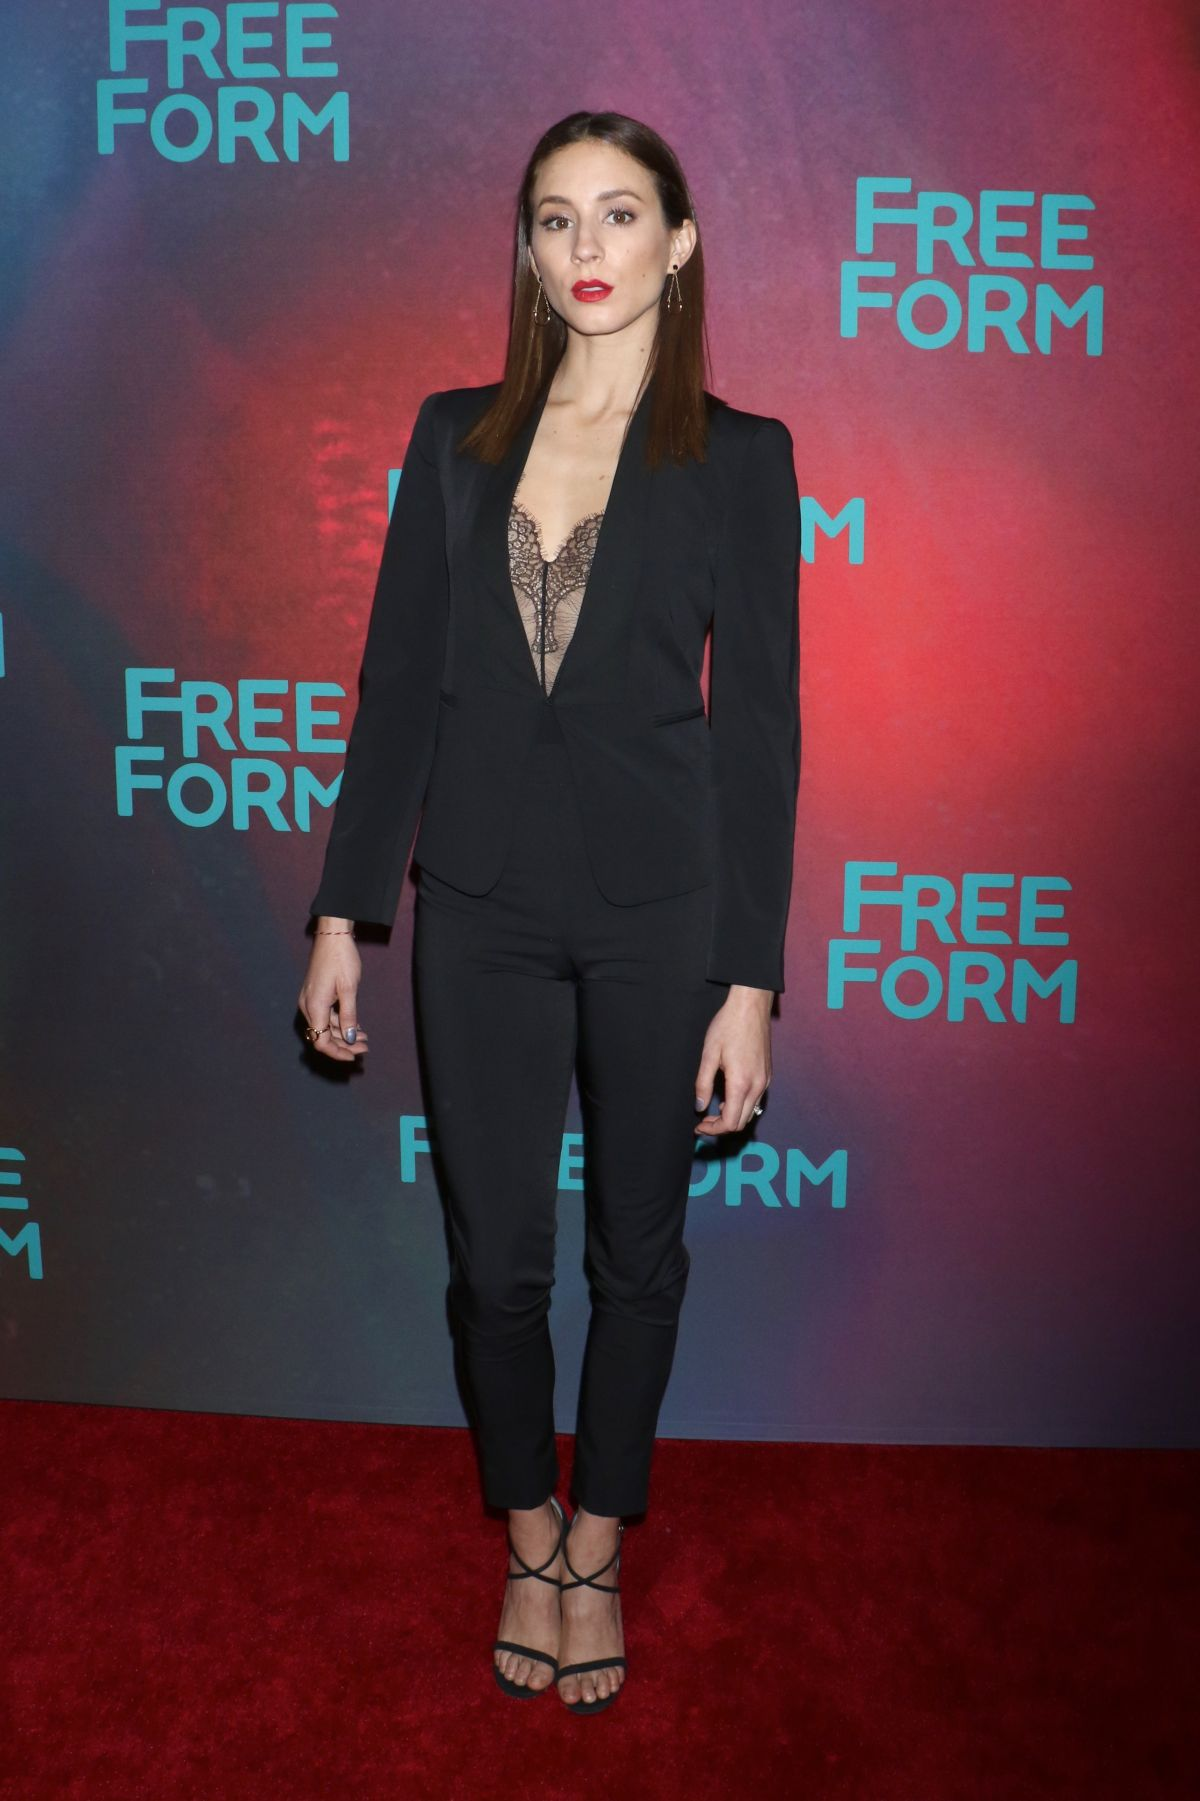 Troian Bellisario At 2017 Freeform Upfront in NYC   troian-bellisario-at-2017-freeform-upfront-in-nyc_13